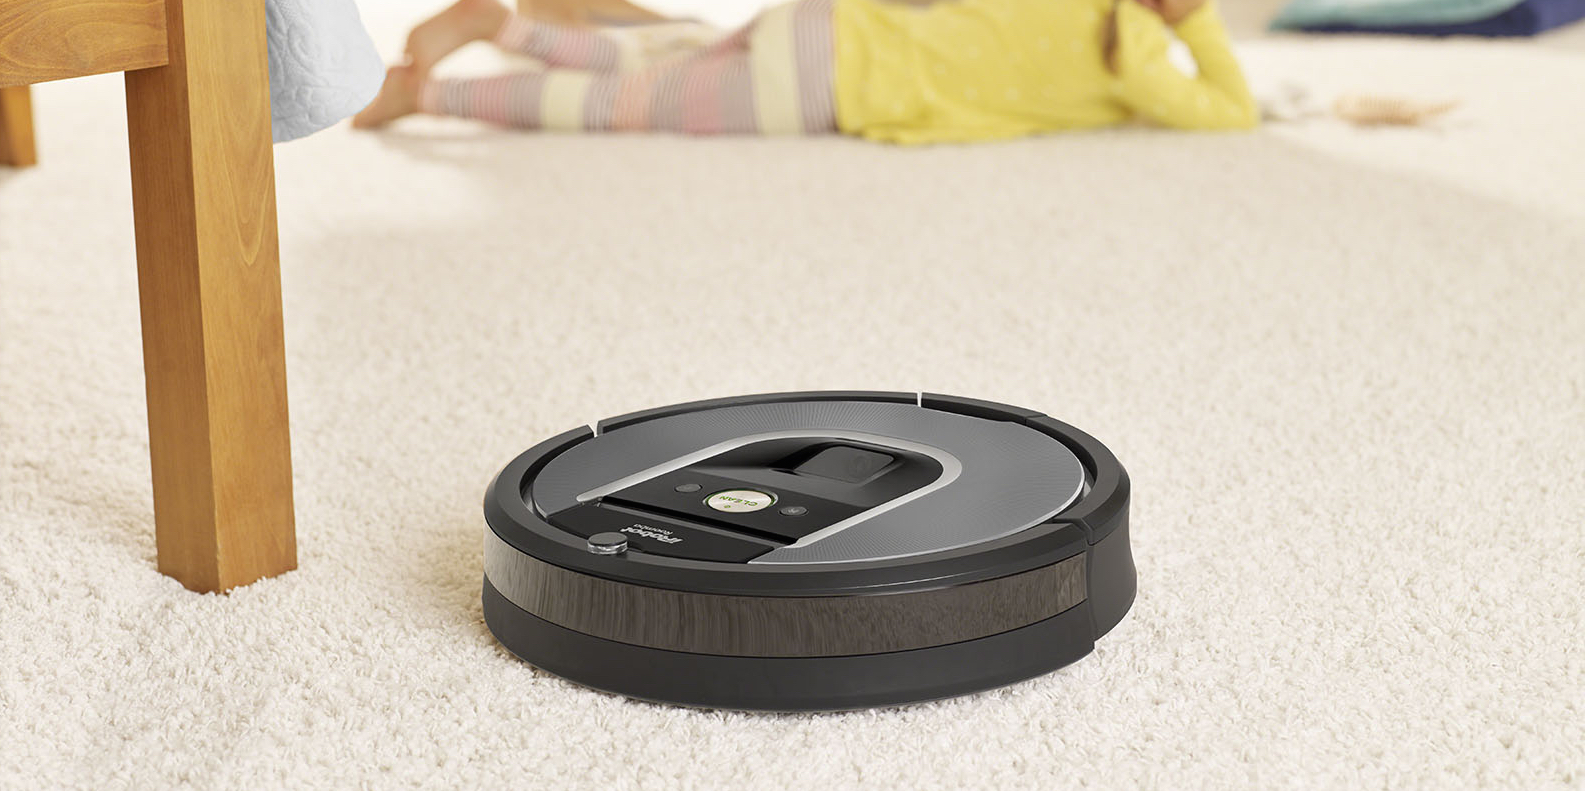 Today only, iRobot Roomba 960 Robot Vacuum drops to $320 (Refurb, Orig. $650) - 9to5Toys